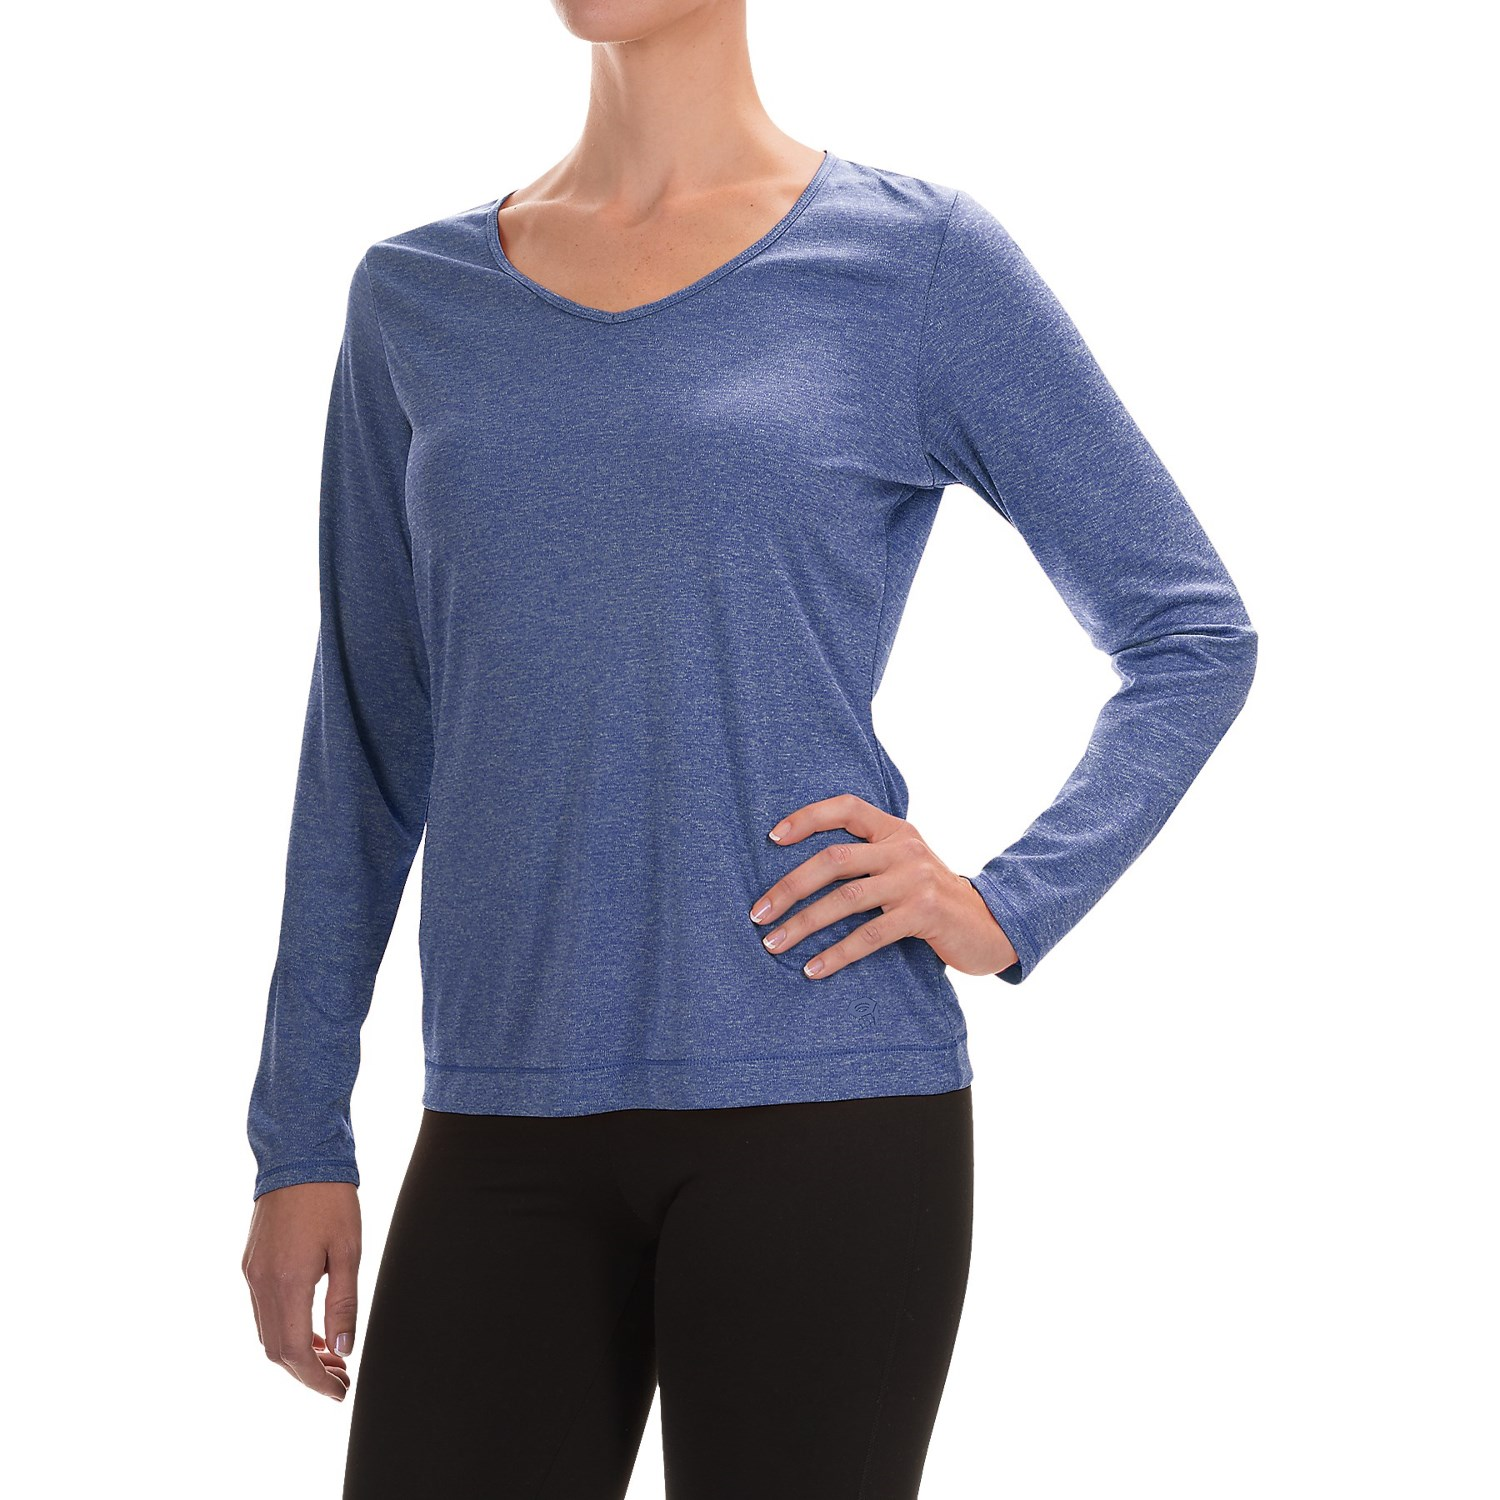 Mountain hardwear wicked printed t shirt for women for Lightweight breathable long sleeve shirts